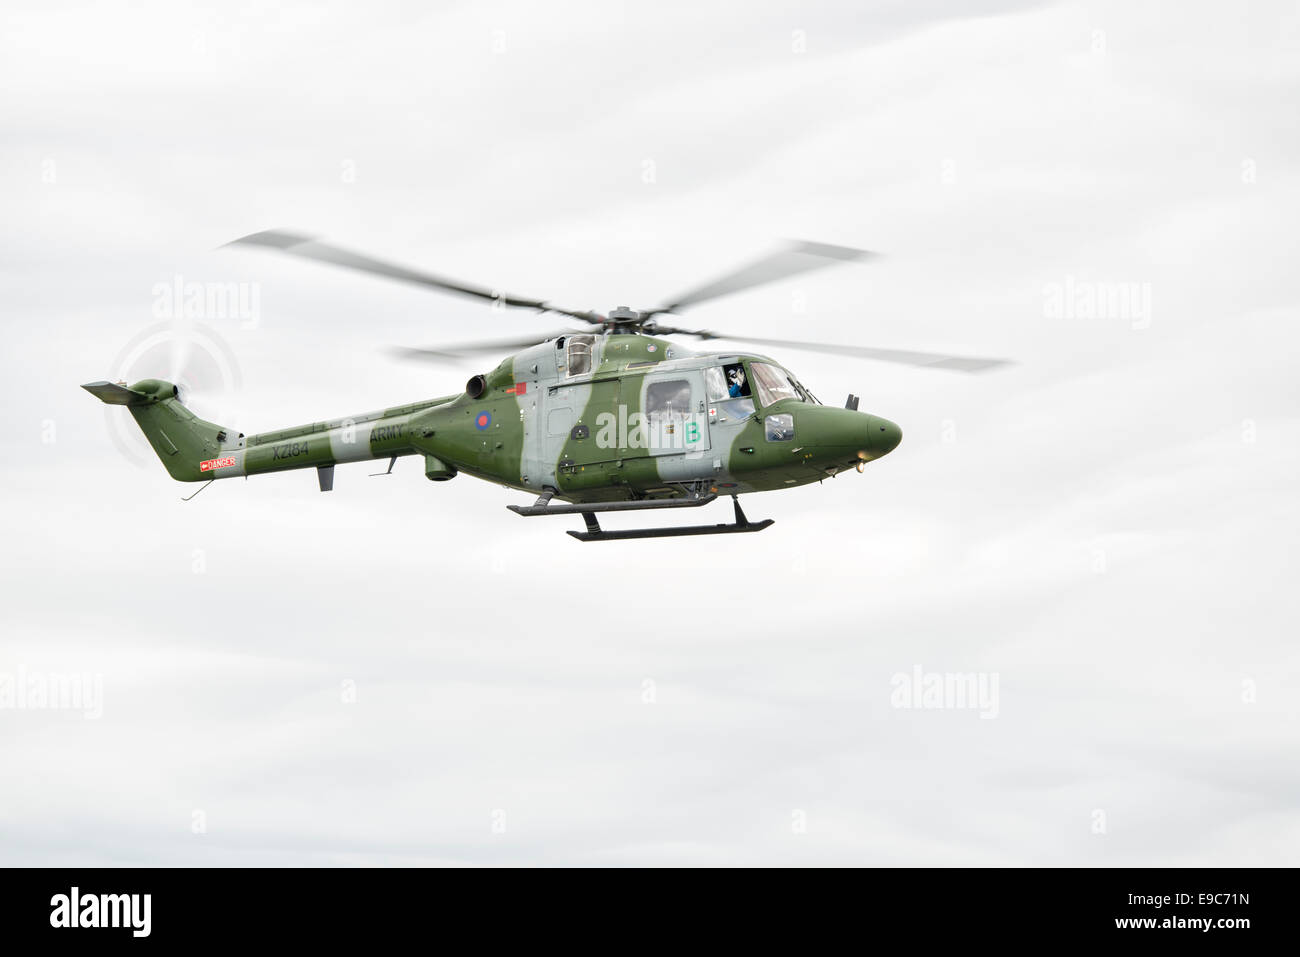 The pilot of this British Army Westland Lynx helicopter waves to the crowd during his display at the 2014 RIAT - Stock Image